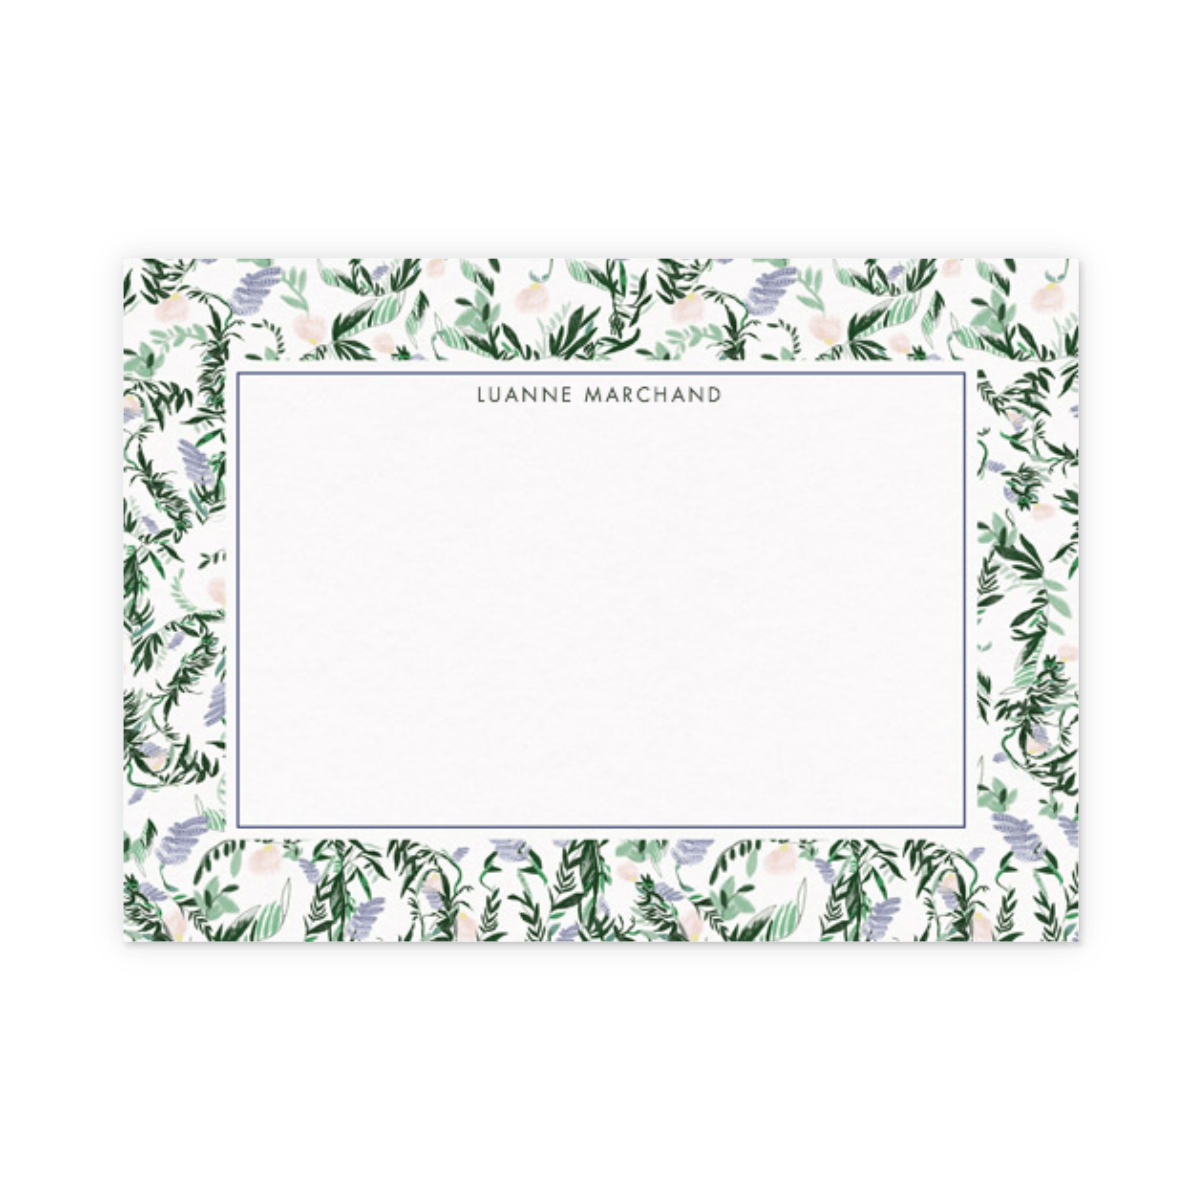 Https%3a%2f%2fwww.papier.com%2fproduct image%2f45007%2f10%2ffrench floral 7496 avant 1534886123.png?ixlib=rb 1.1